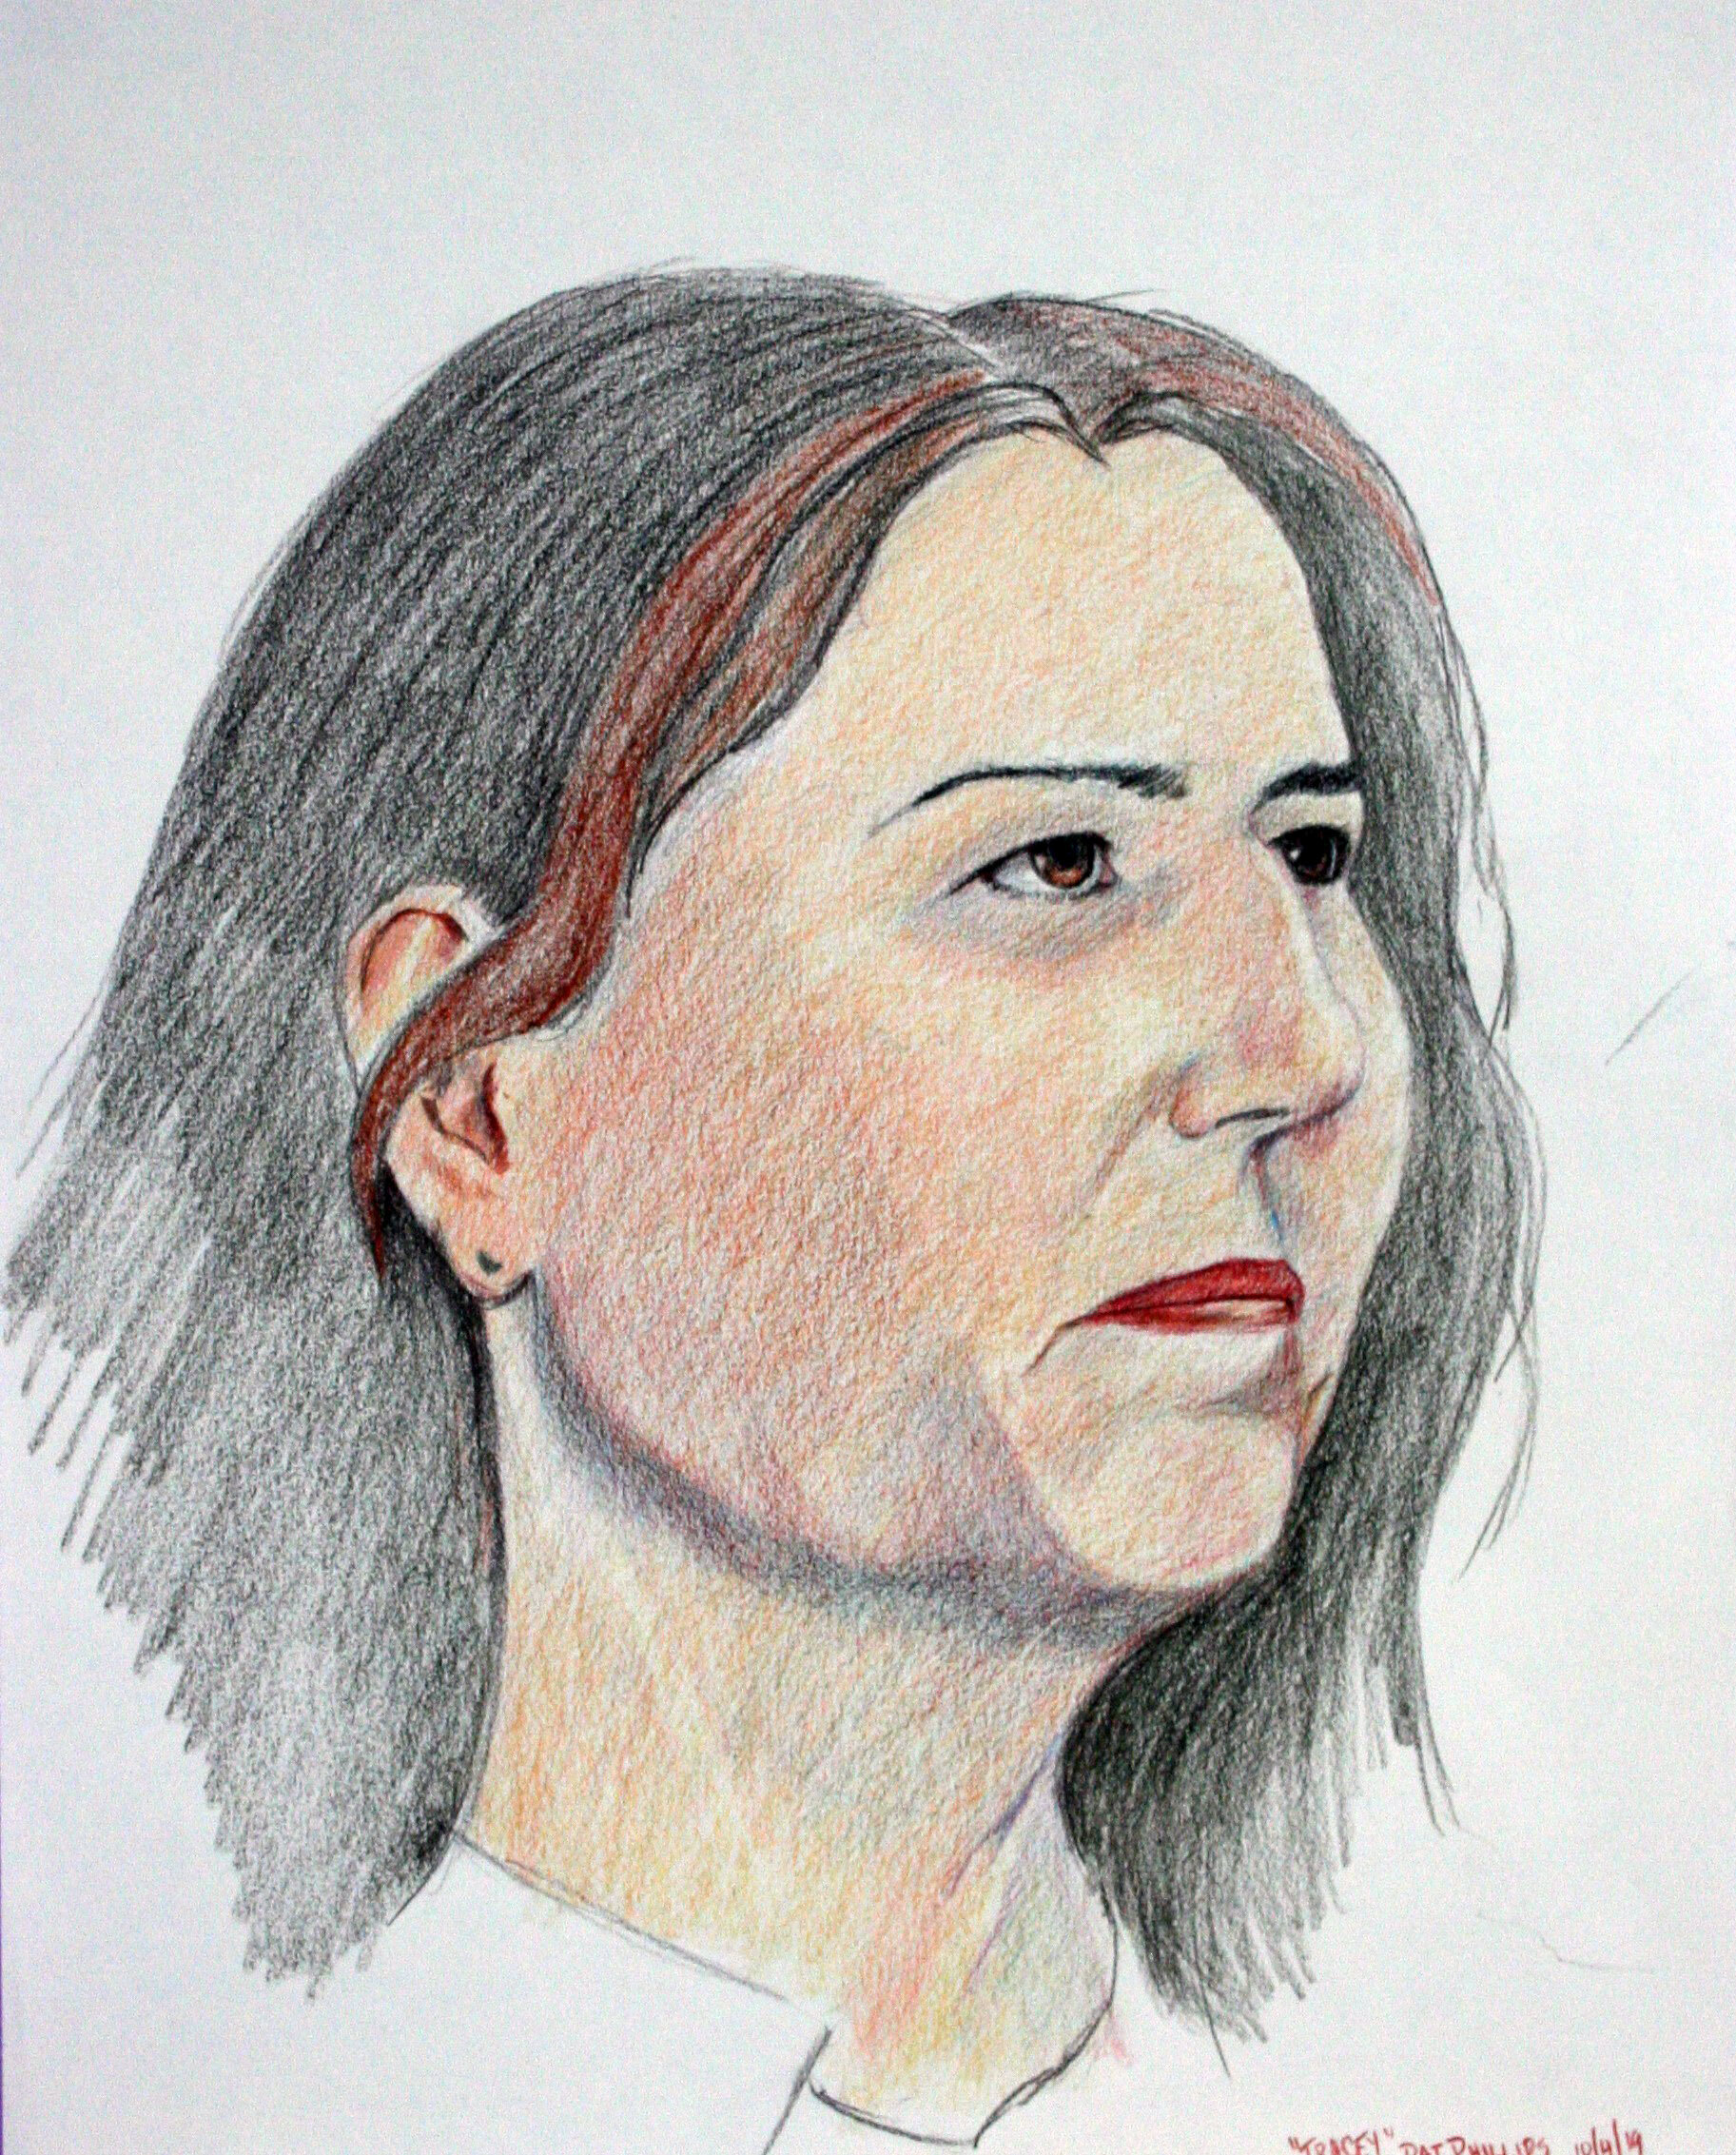 Pat Phillips - Colored pencils